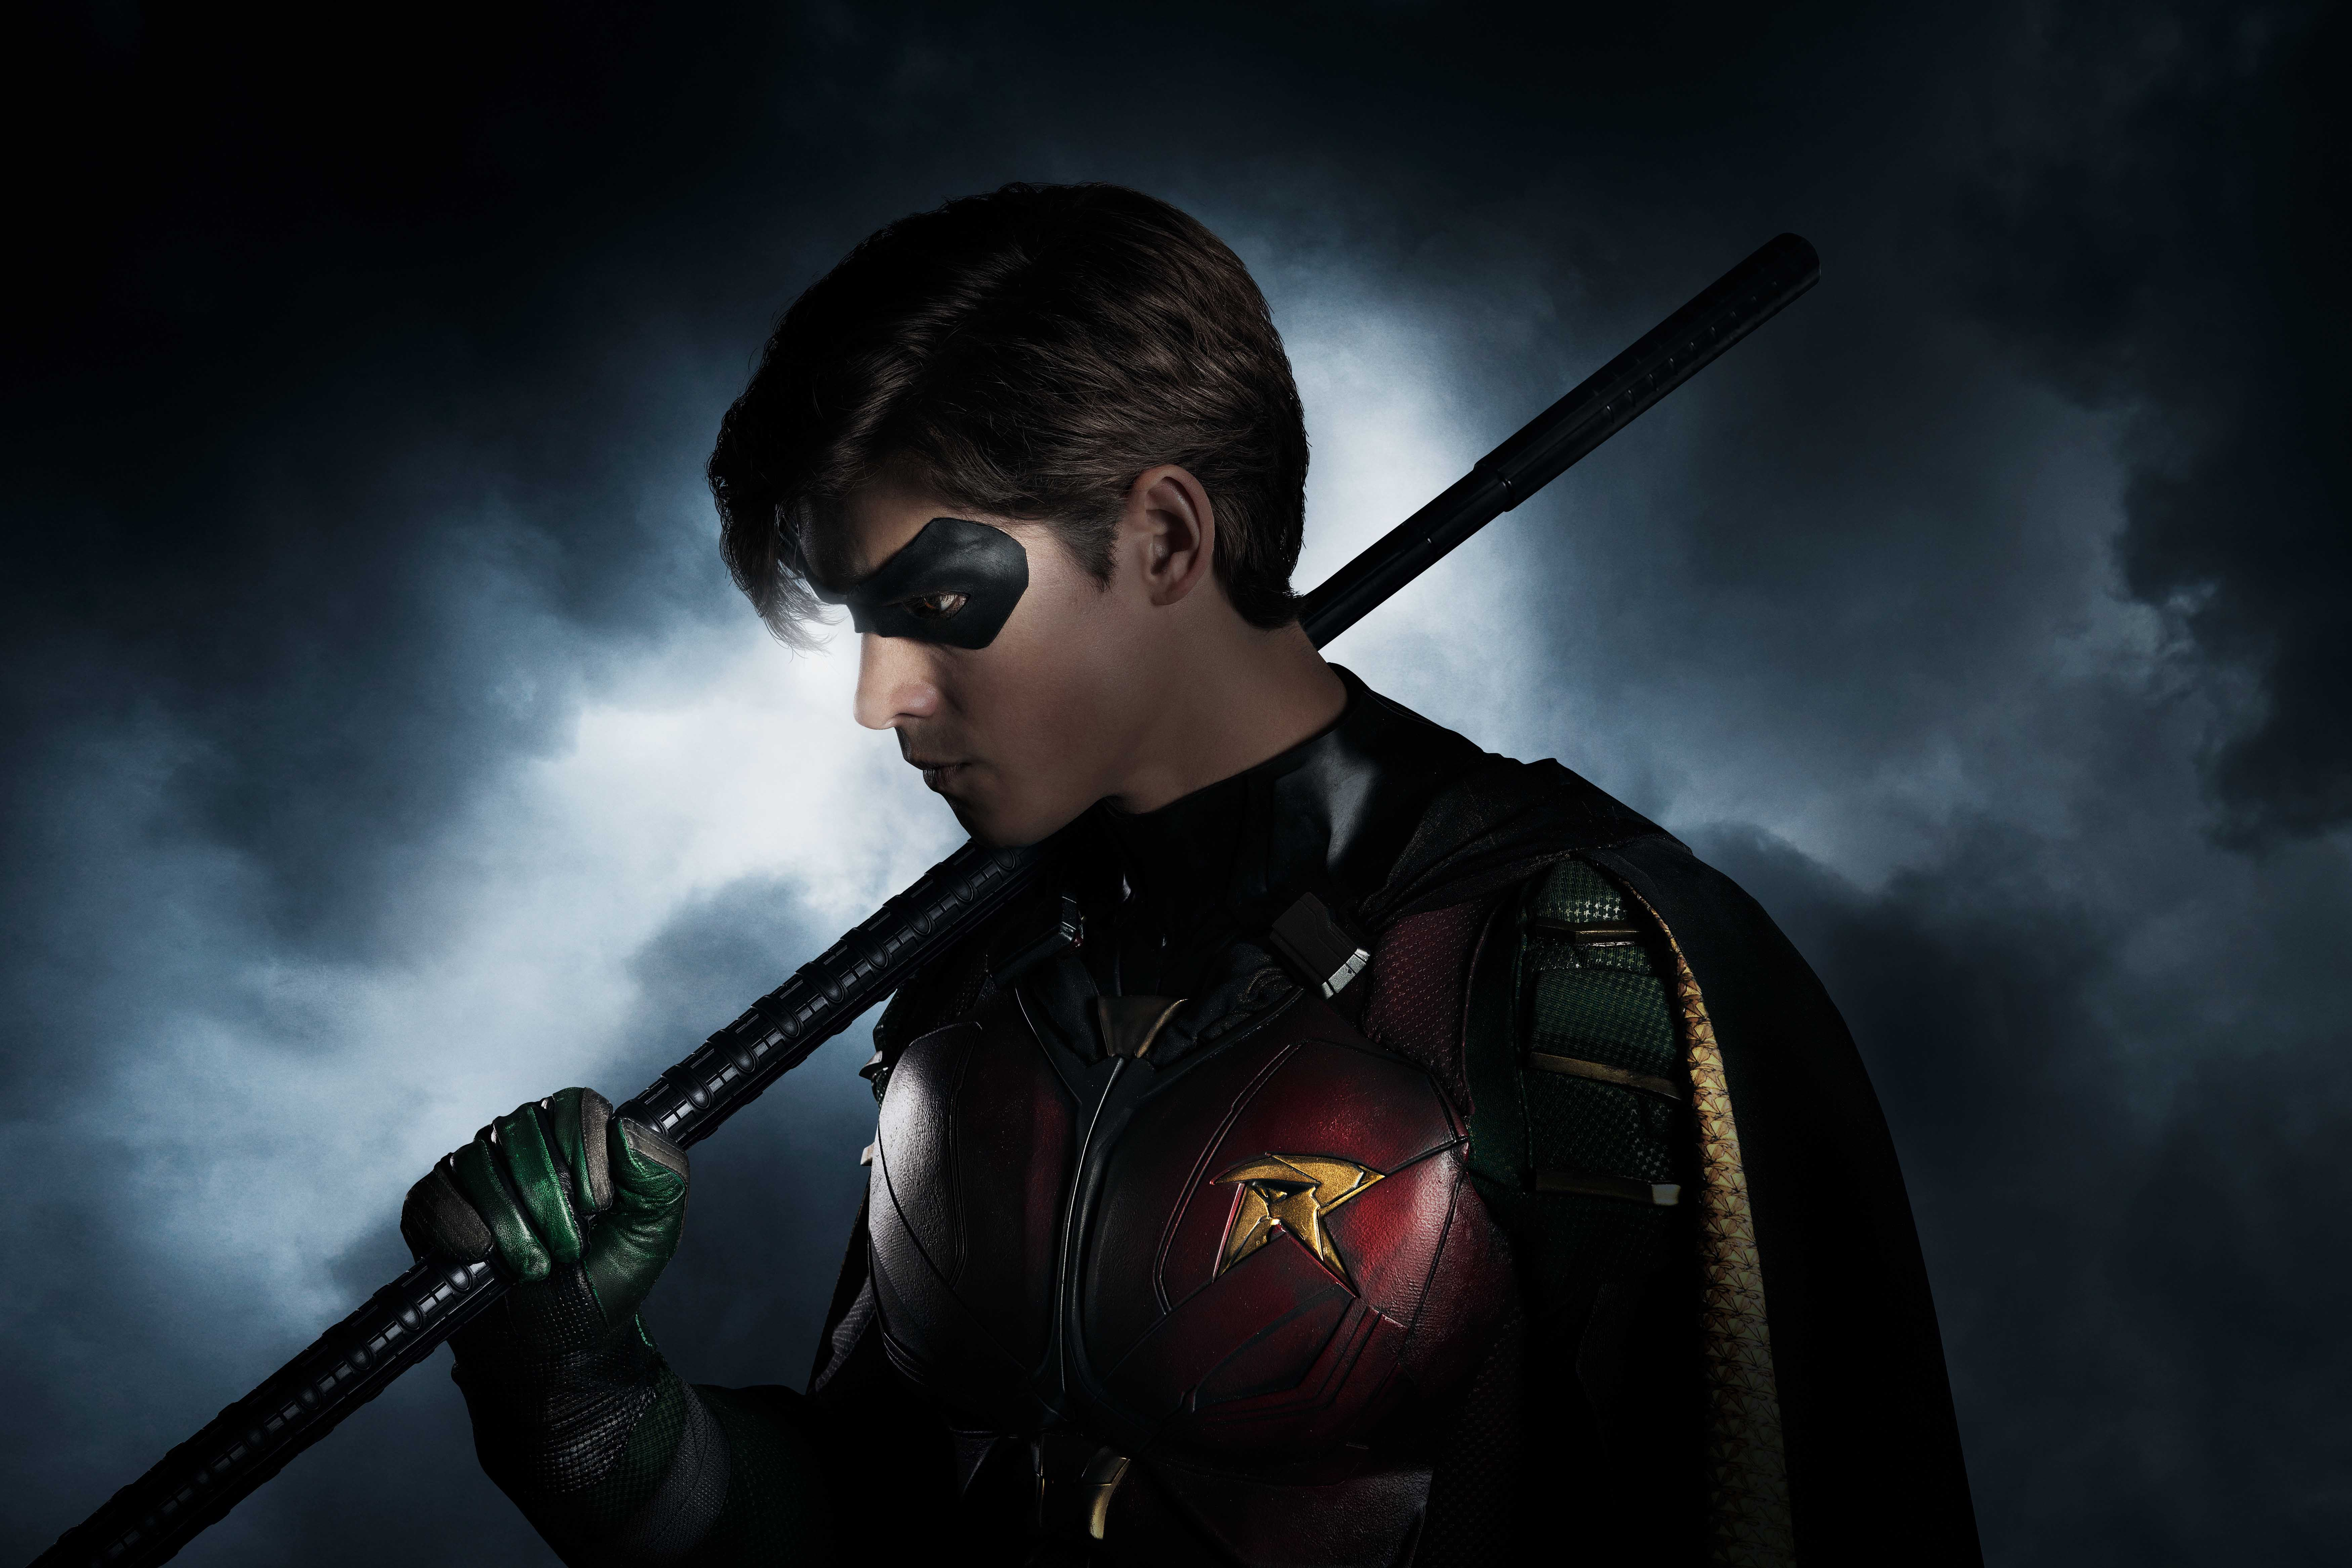 Titans: Brenton Thwaite shares new images in Robin costume